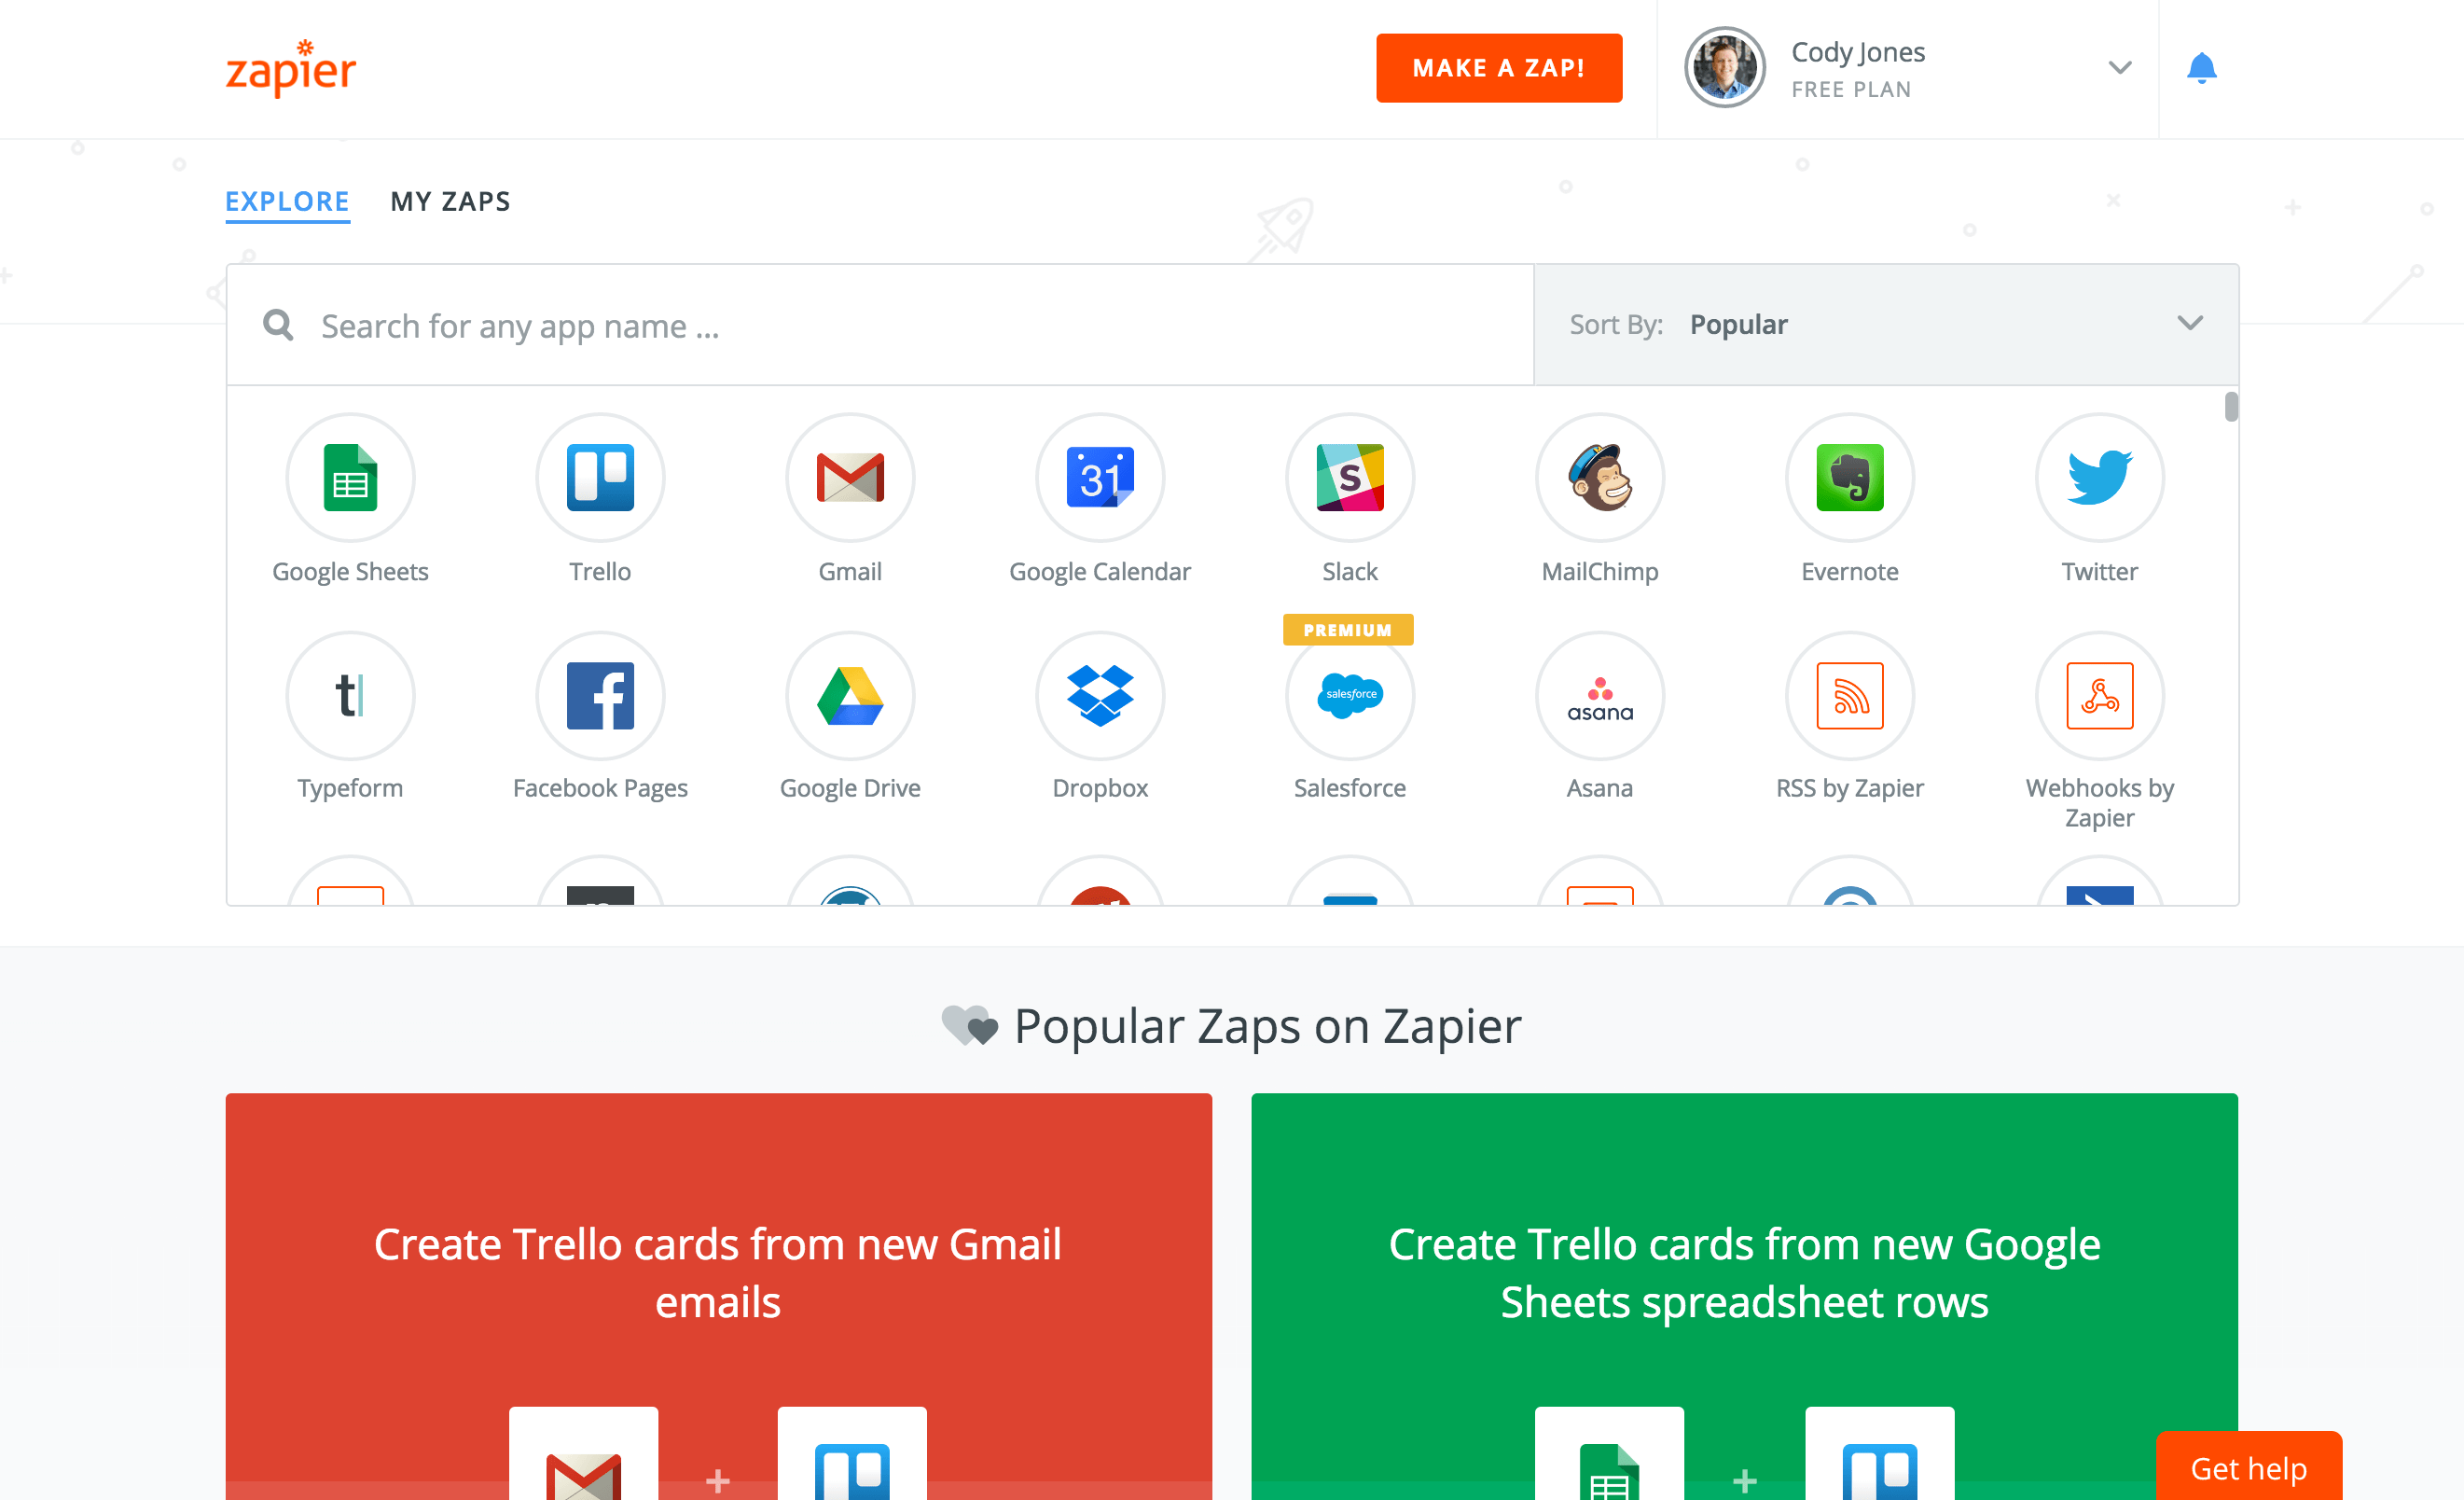 Zapier can help automate your tasks - this is how you enhance your small business in the digital age.